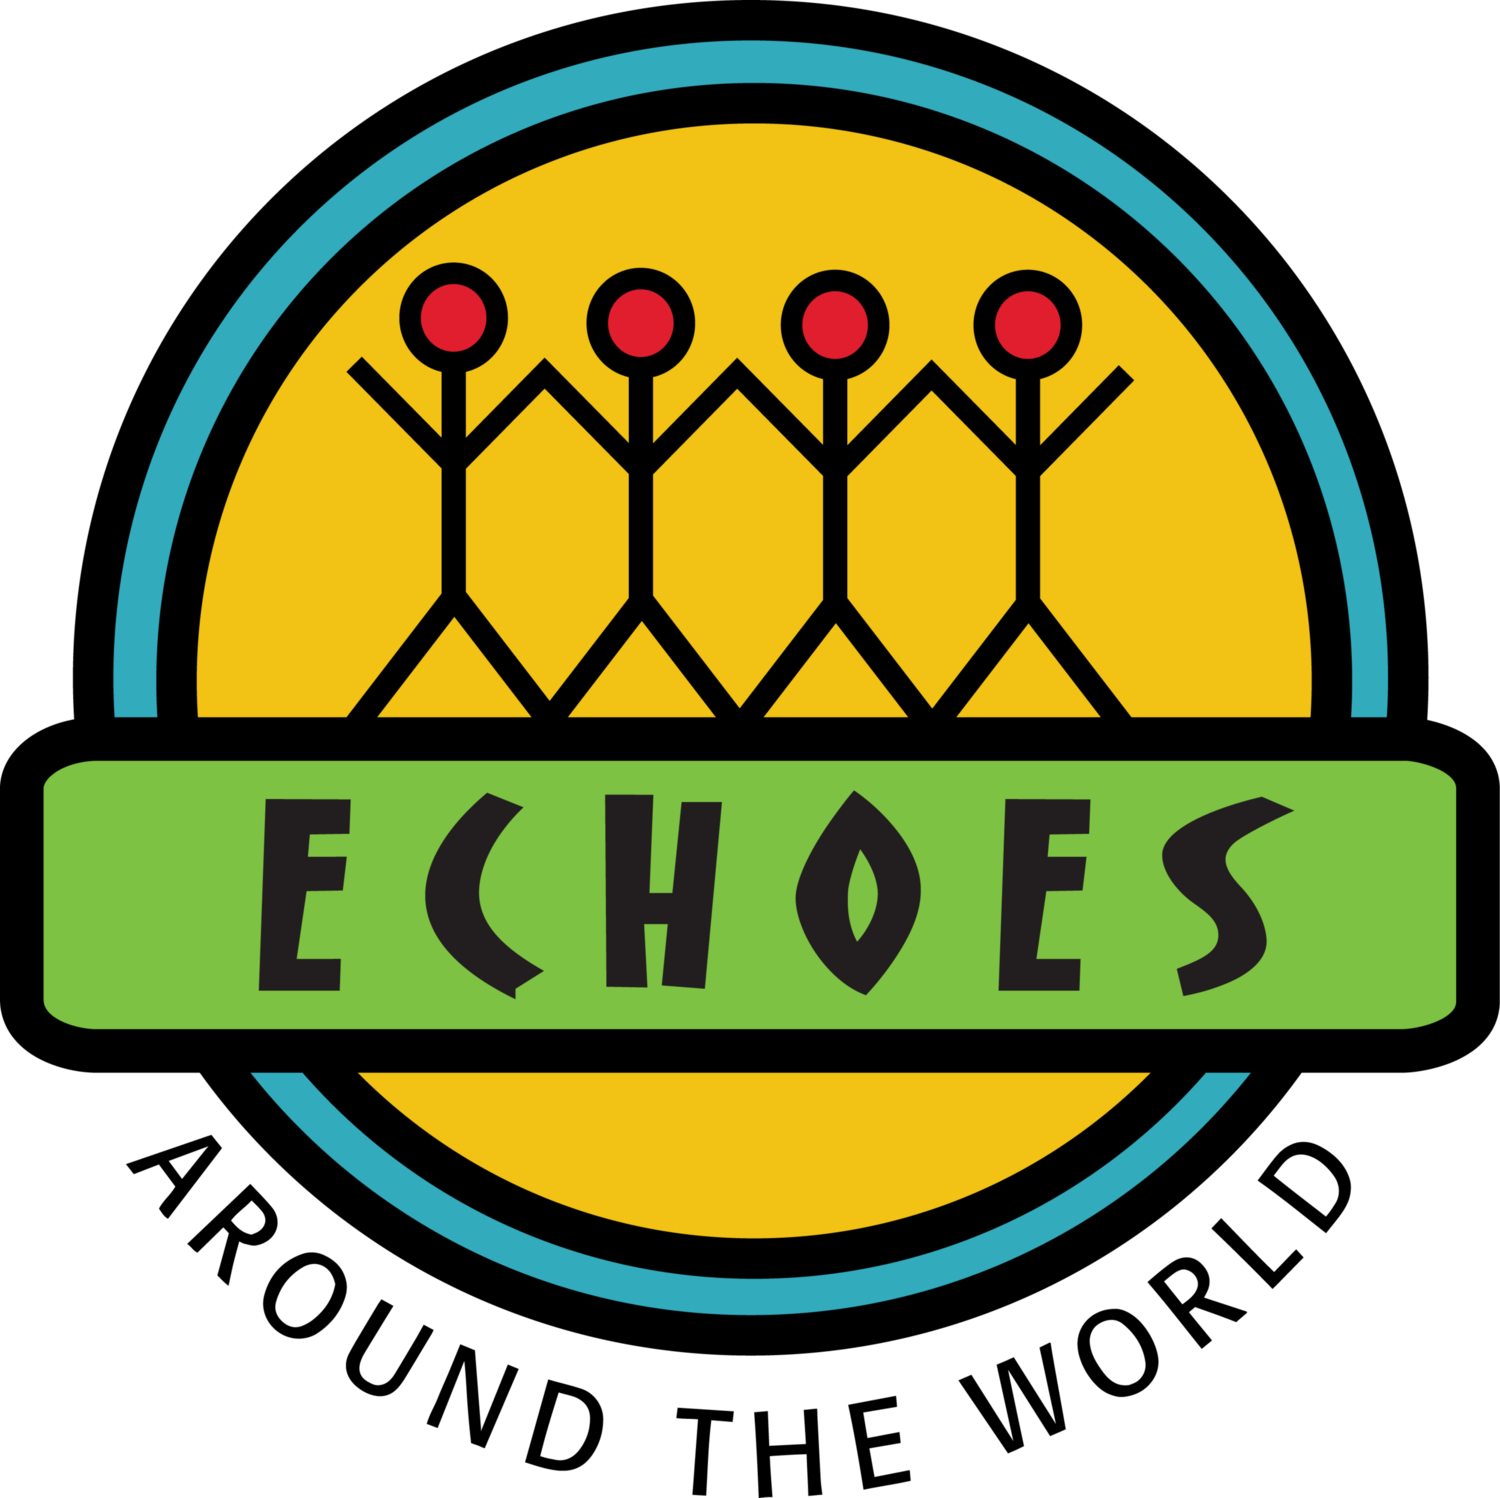 ECHOES Around the World